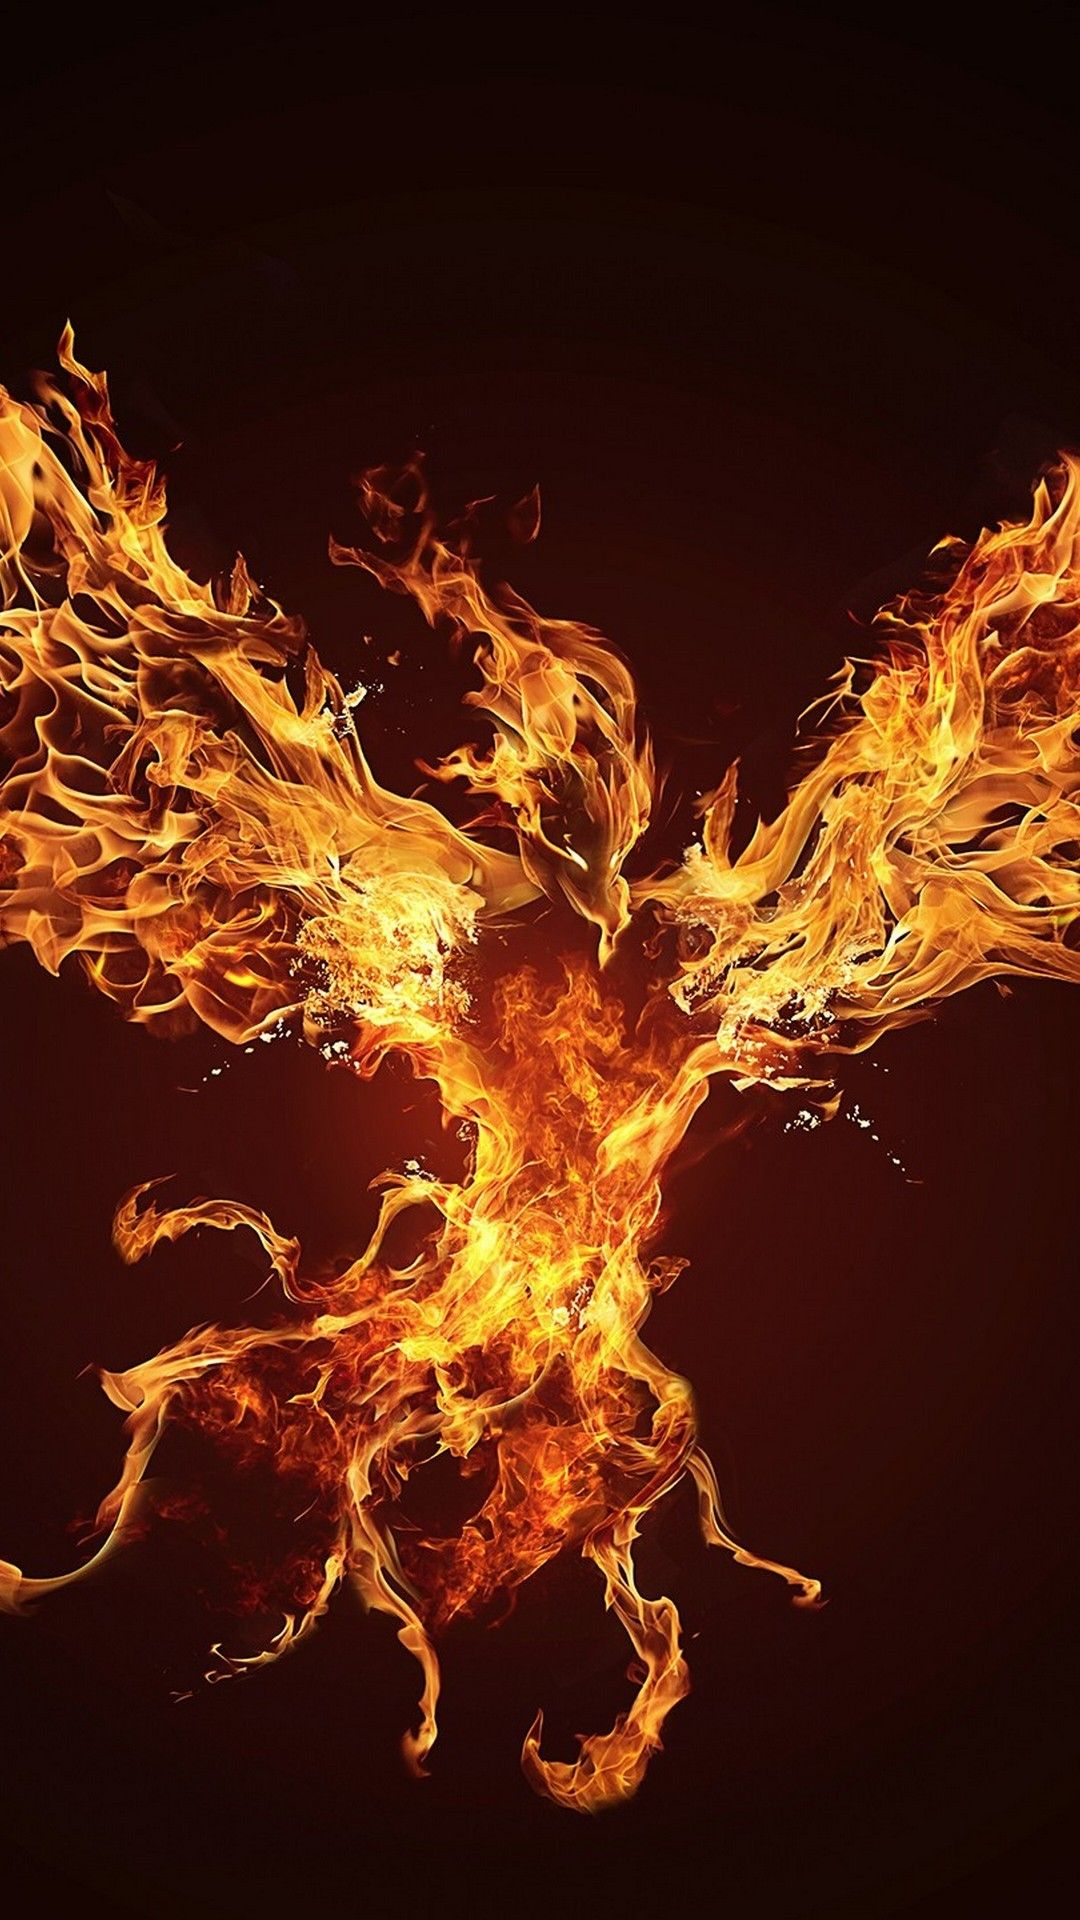 iphone x wallpaper phoenix 2018 iphone wallpapers